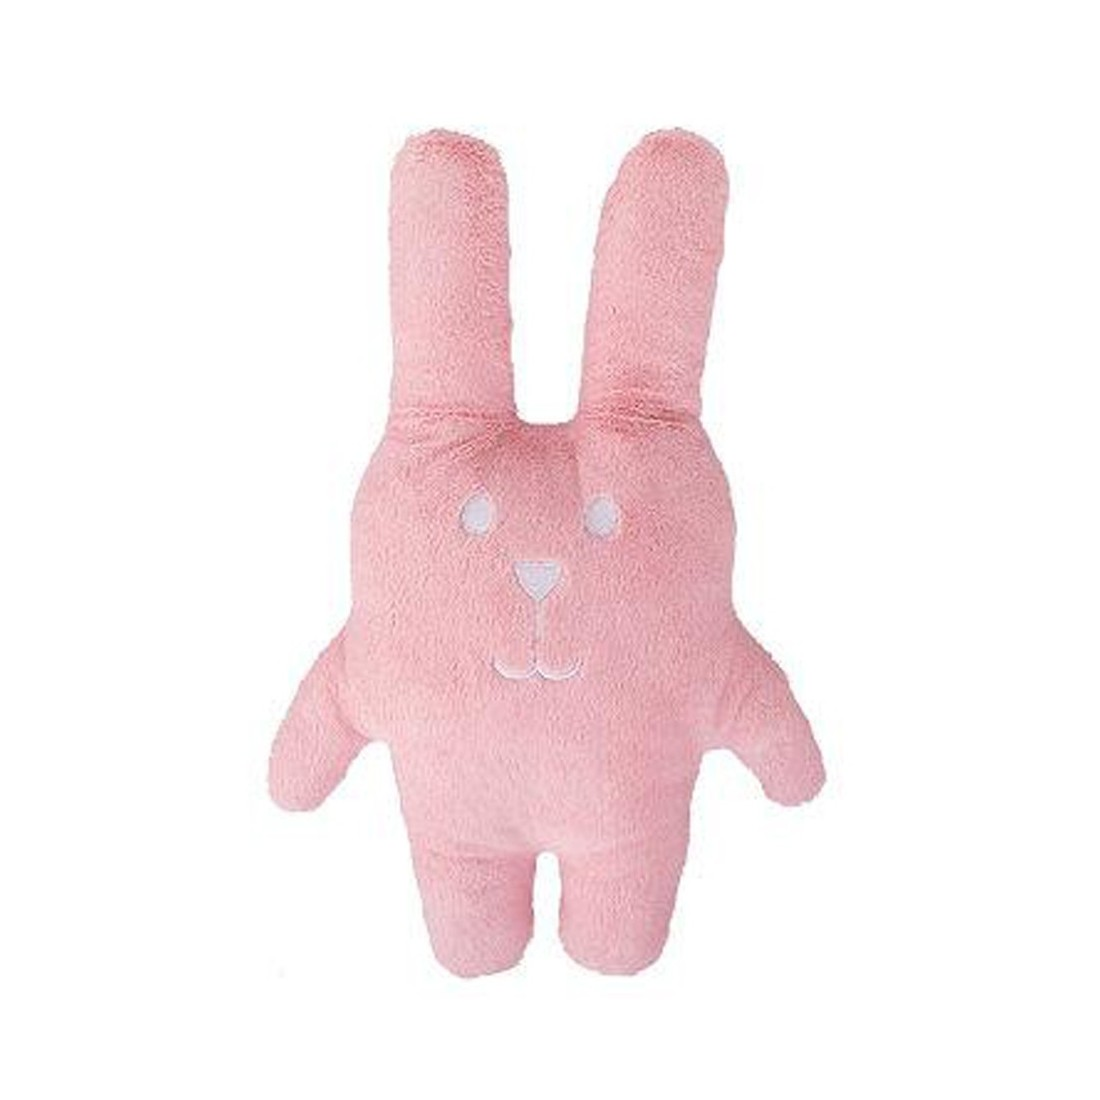 Coussin peluche lapin rose